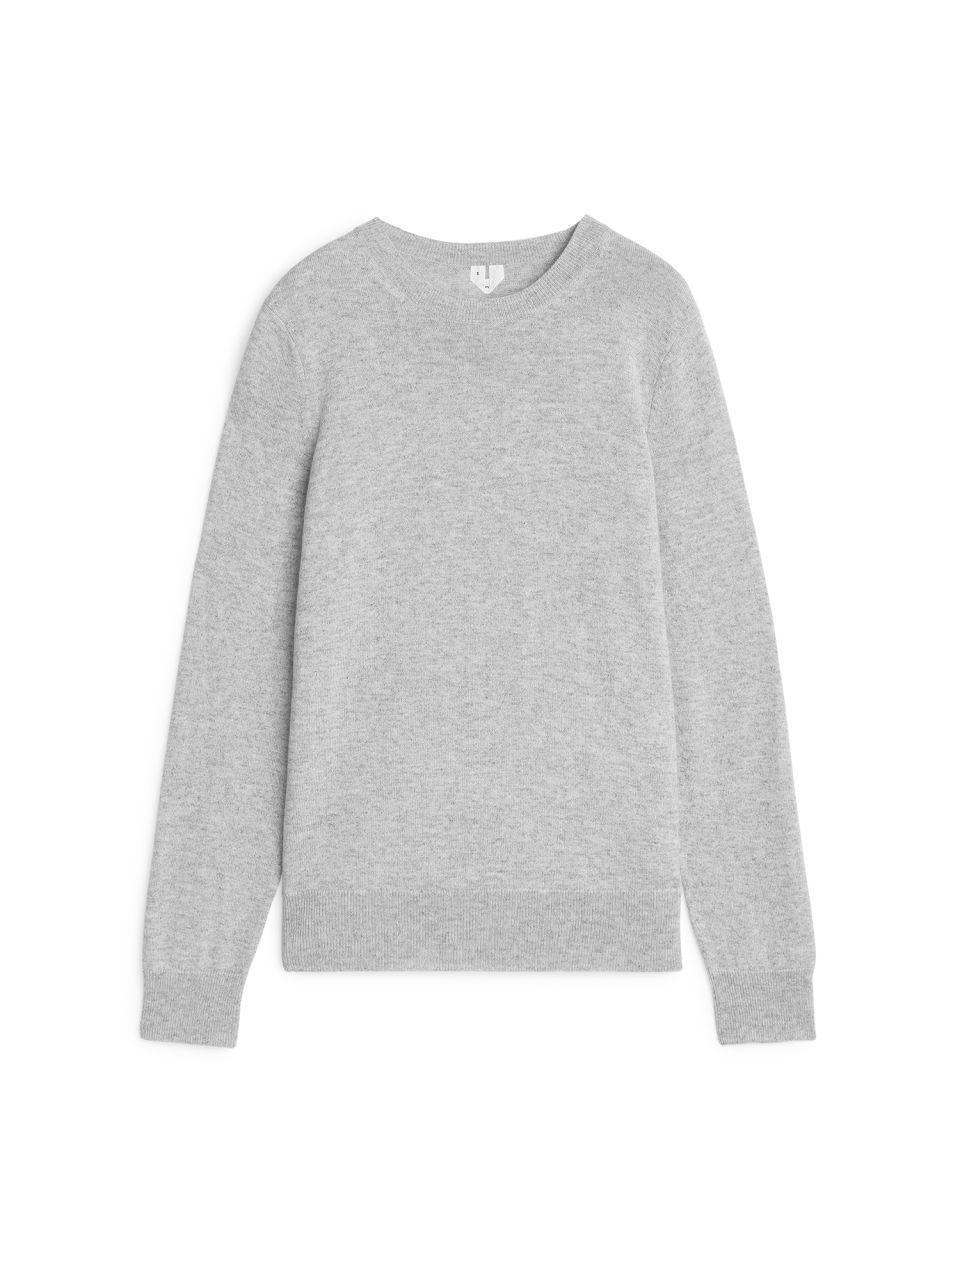 de11ad30edc6c7 Alpaca Wool Blend Jumper - Light Pink - Knitwear in 2019 | My style ...